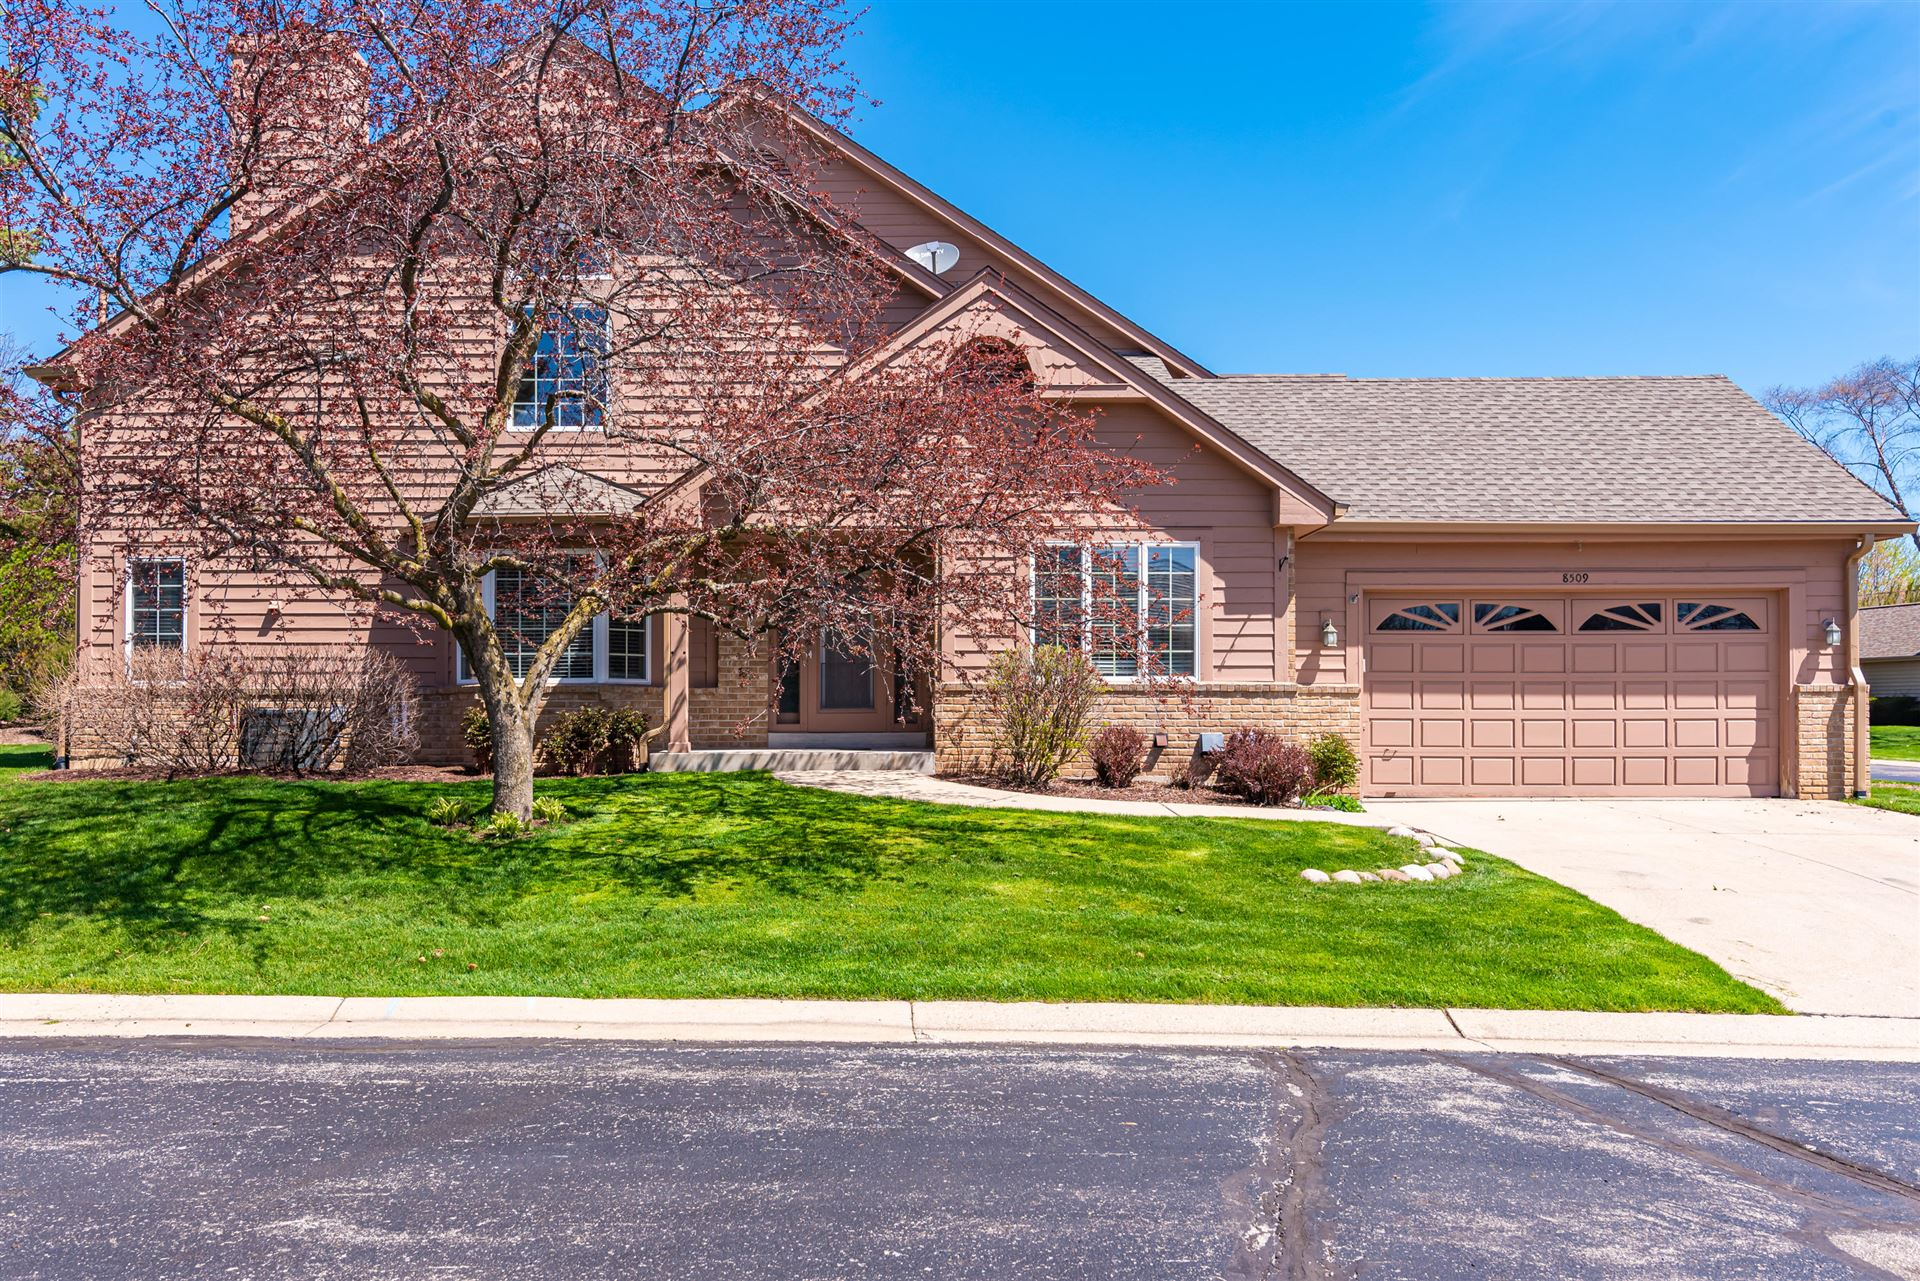 8509 S Country Club Dr, Franklin, WI 53132 - #: 1687699